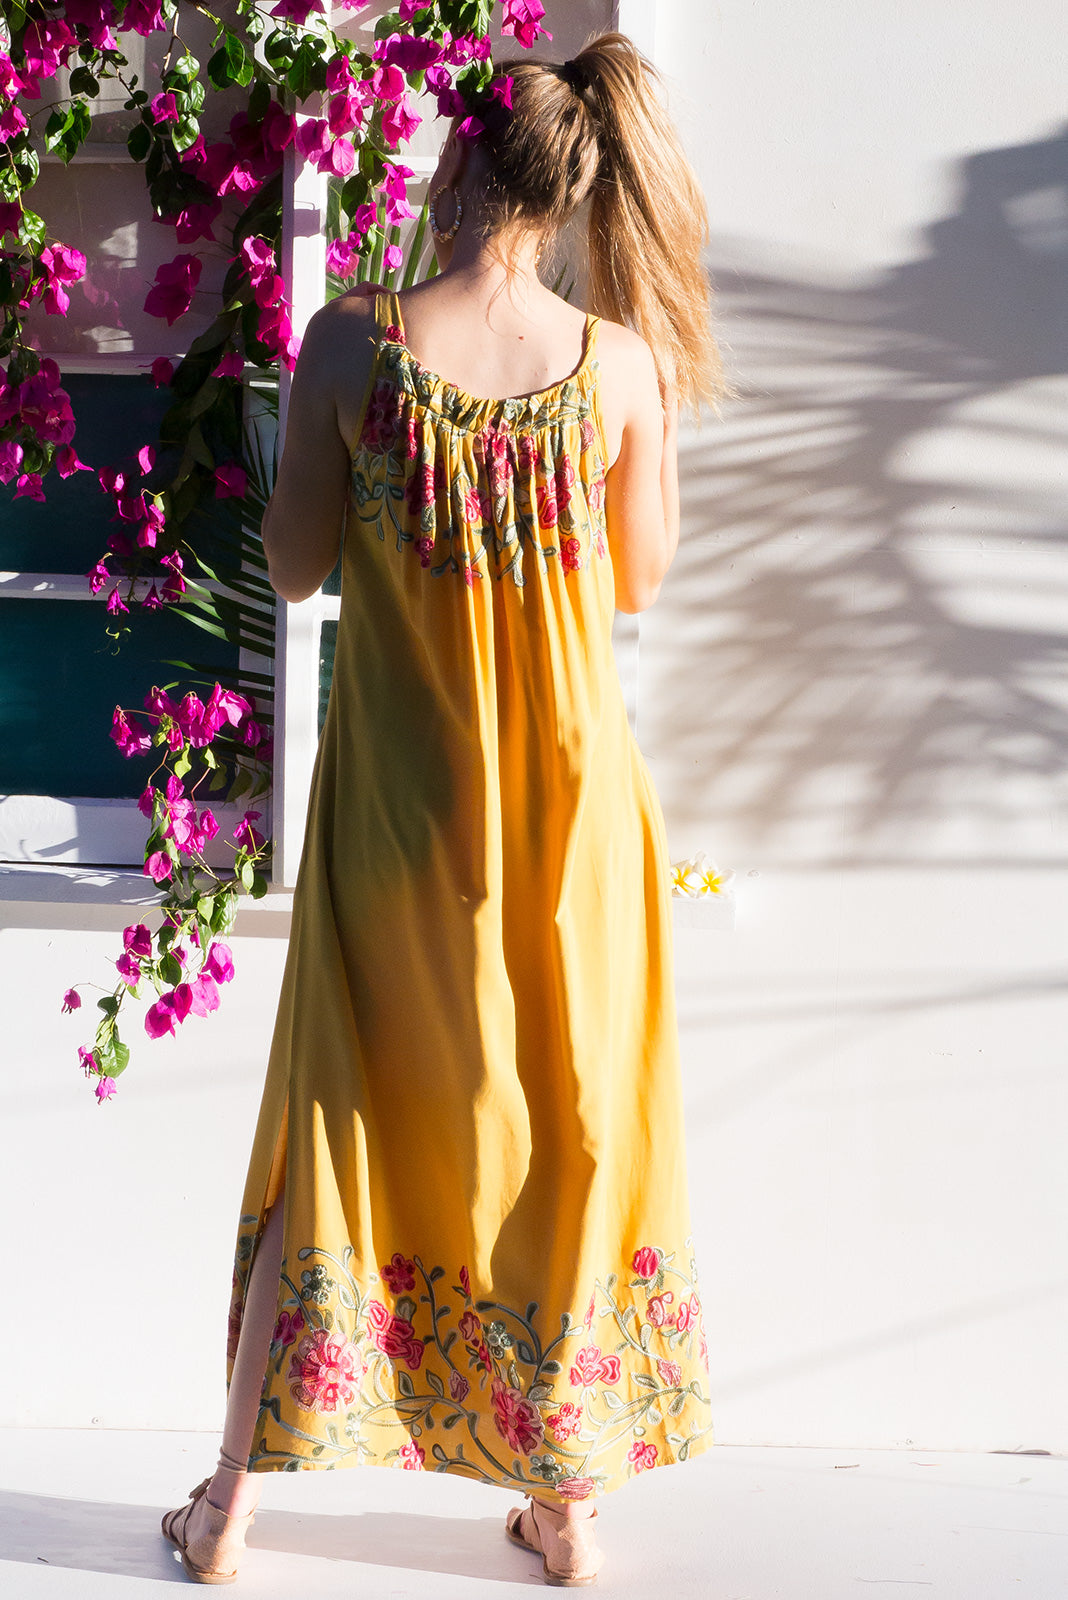 Island Beach Maxi Dress with adjustable tie front neckline in creamy gold  with bohemian inspired embroidery